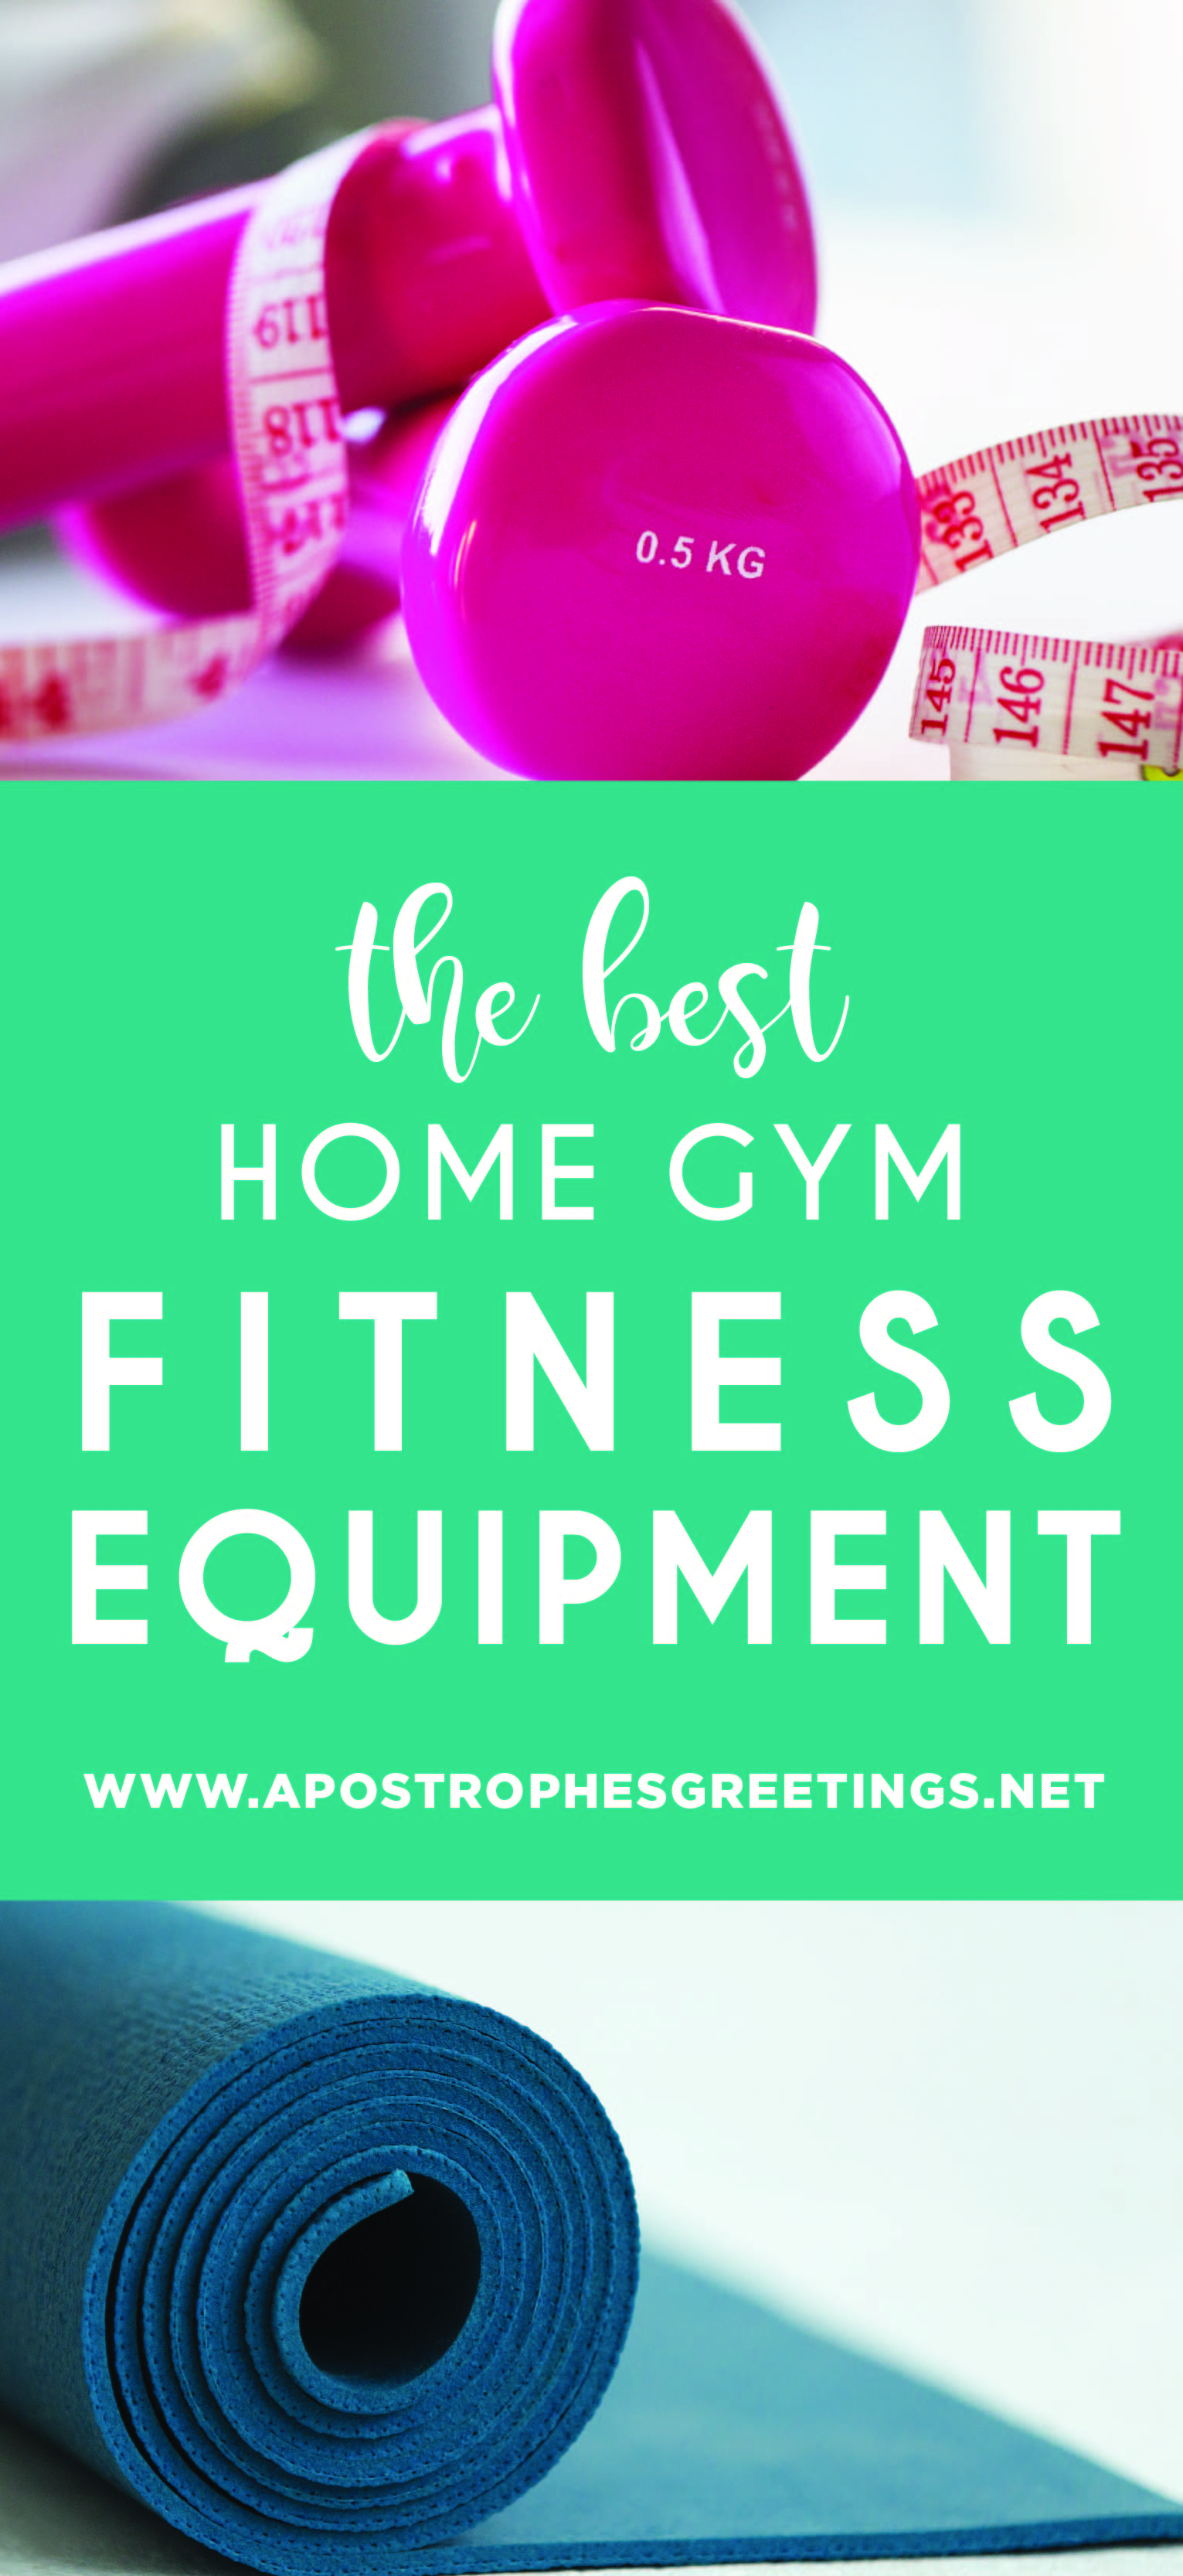 5 home gym essentials, budget friendly